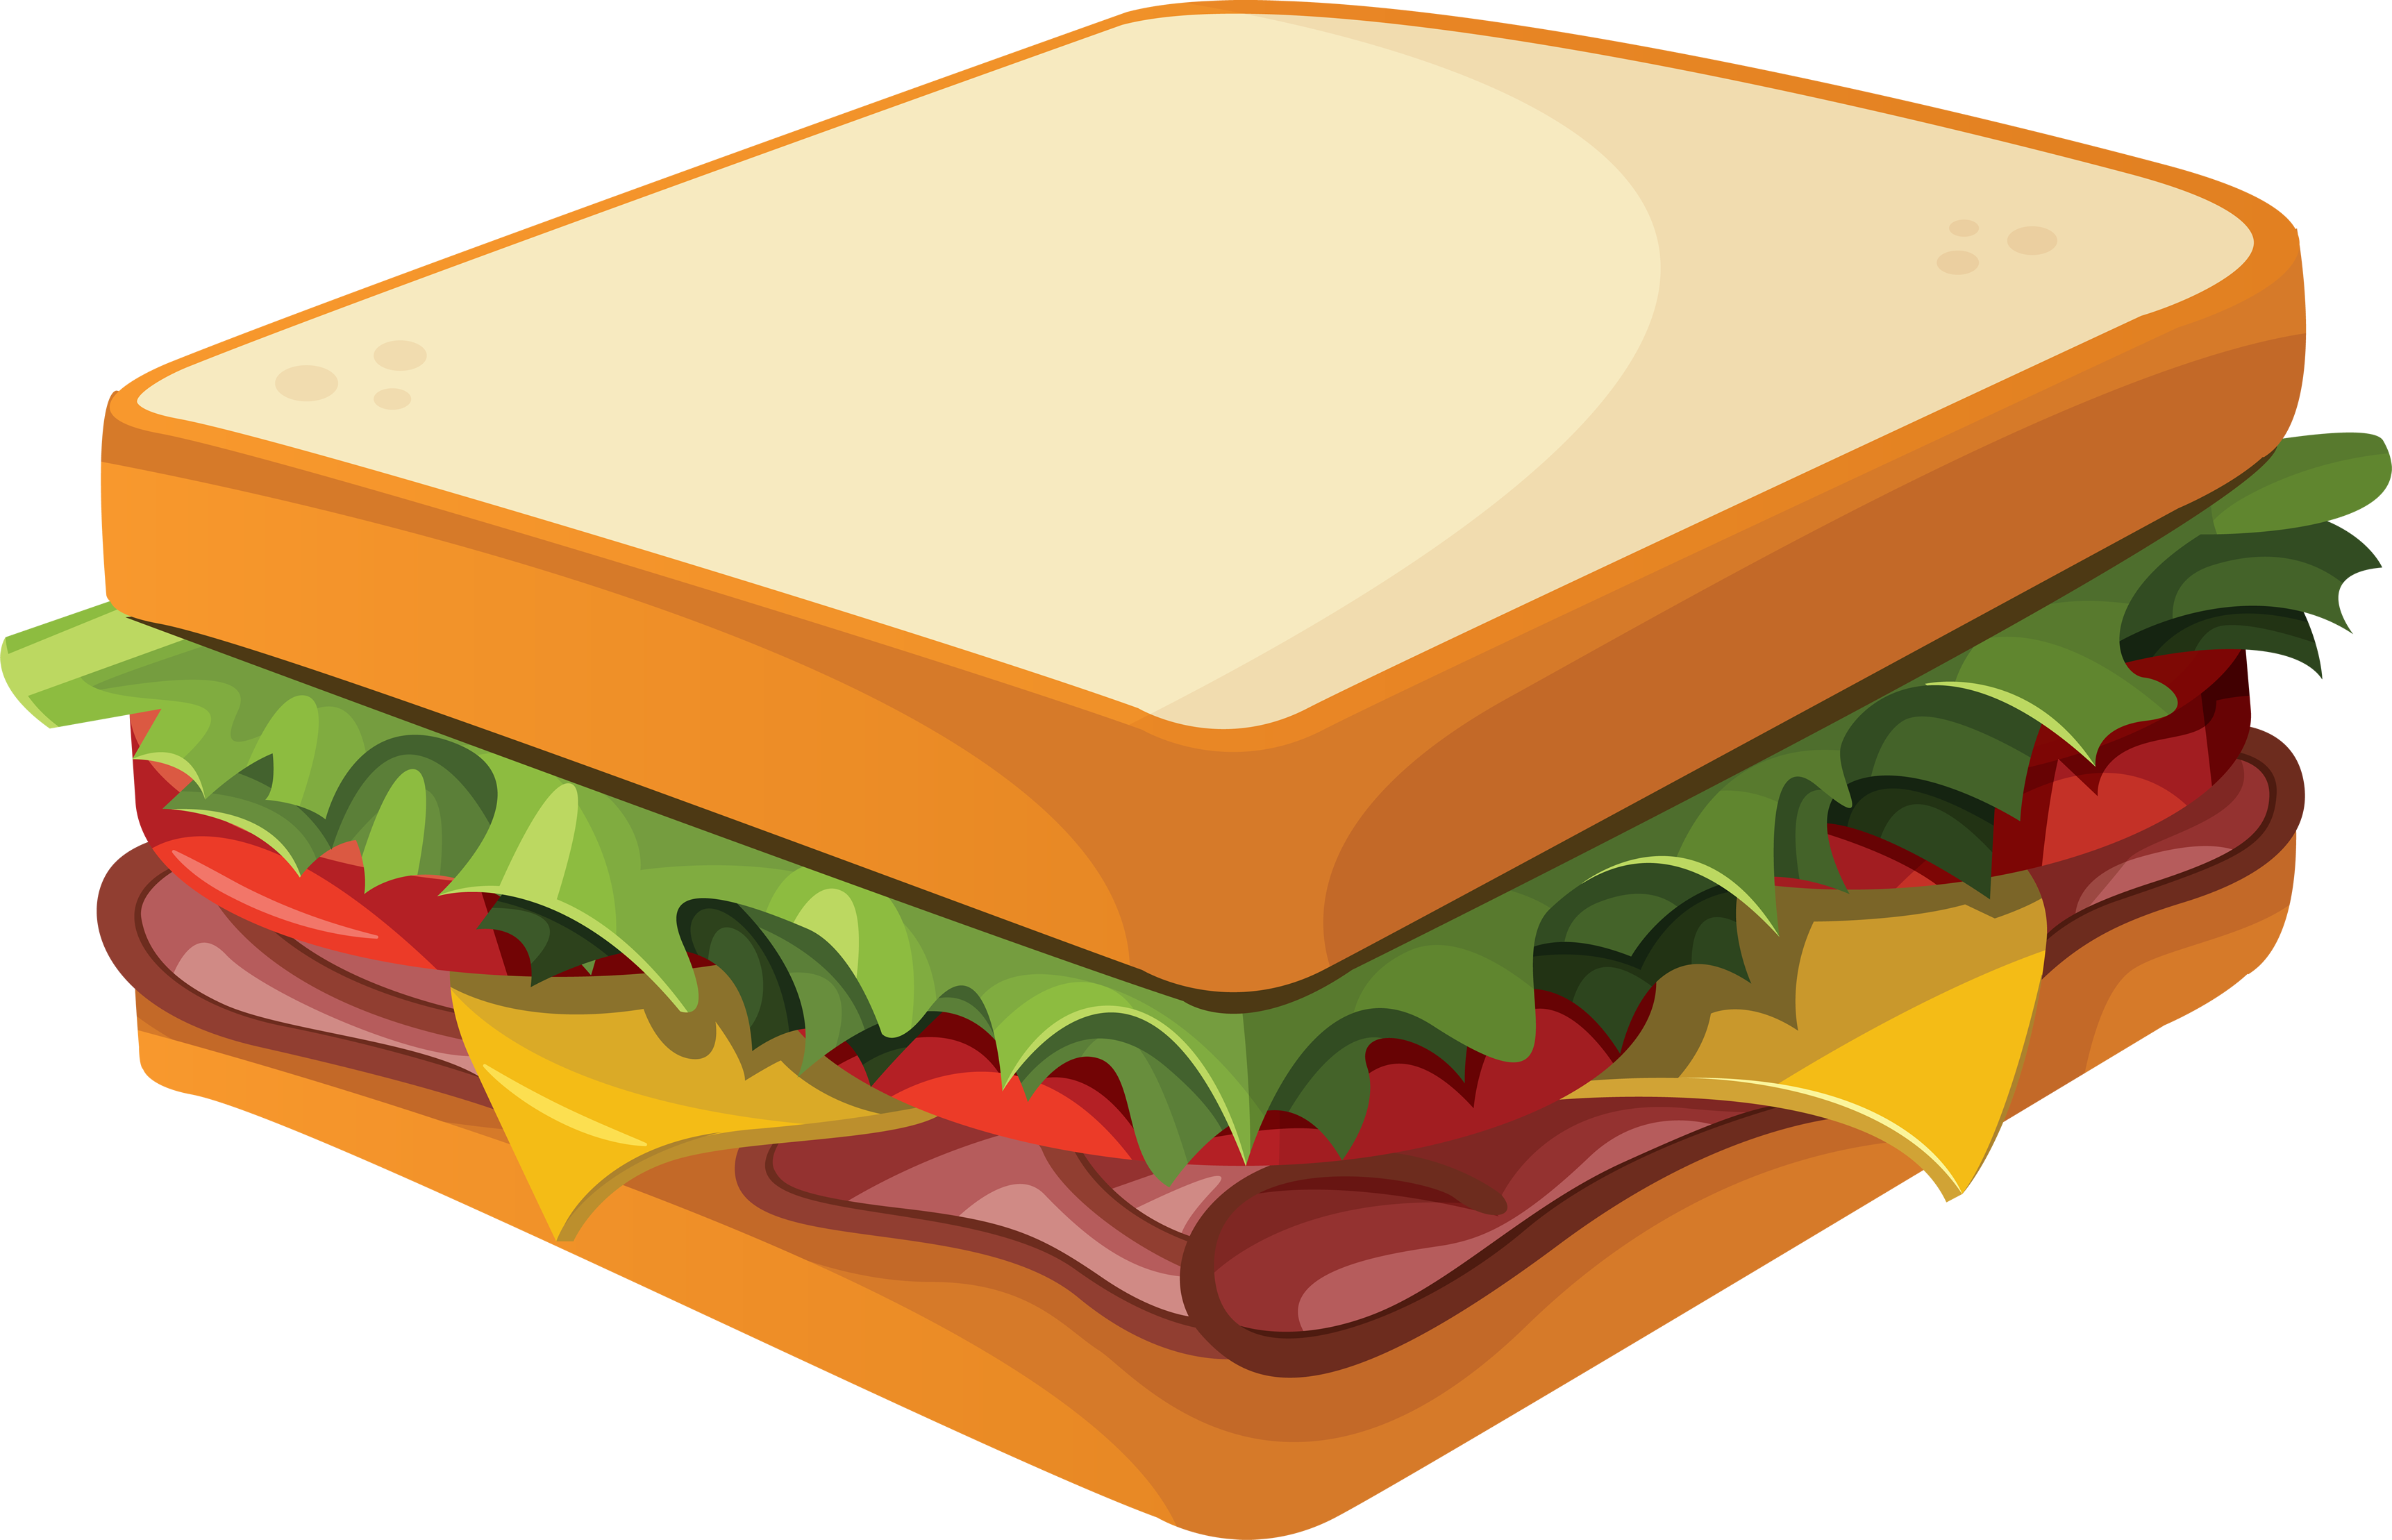 Sandwich clip art free. Luncheon clipart table full food